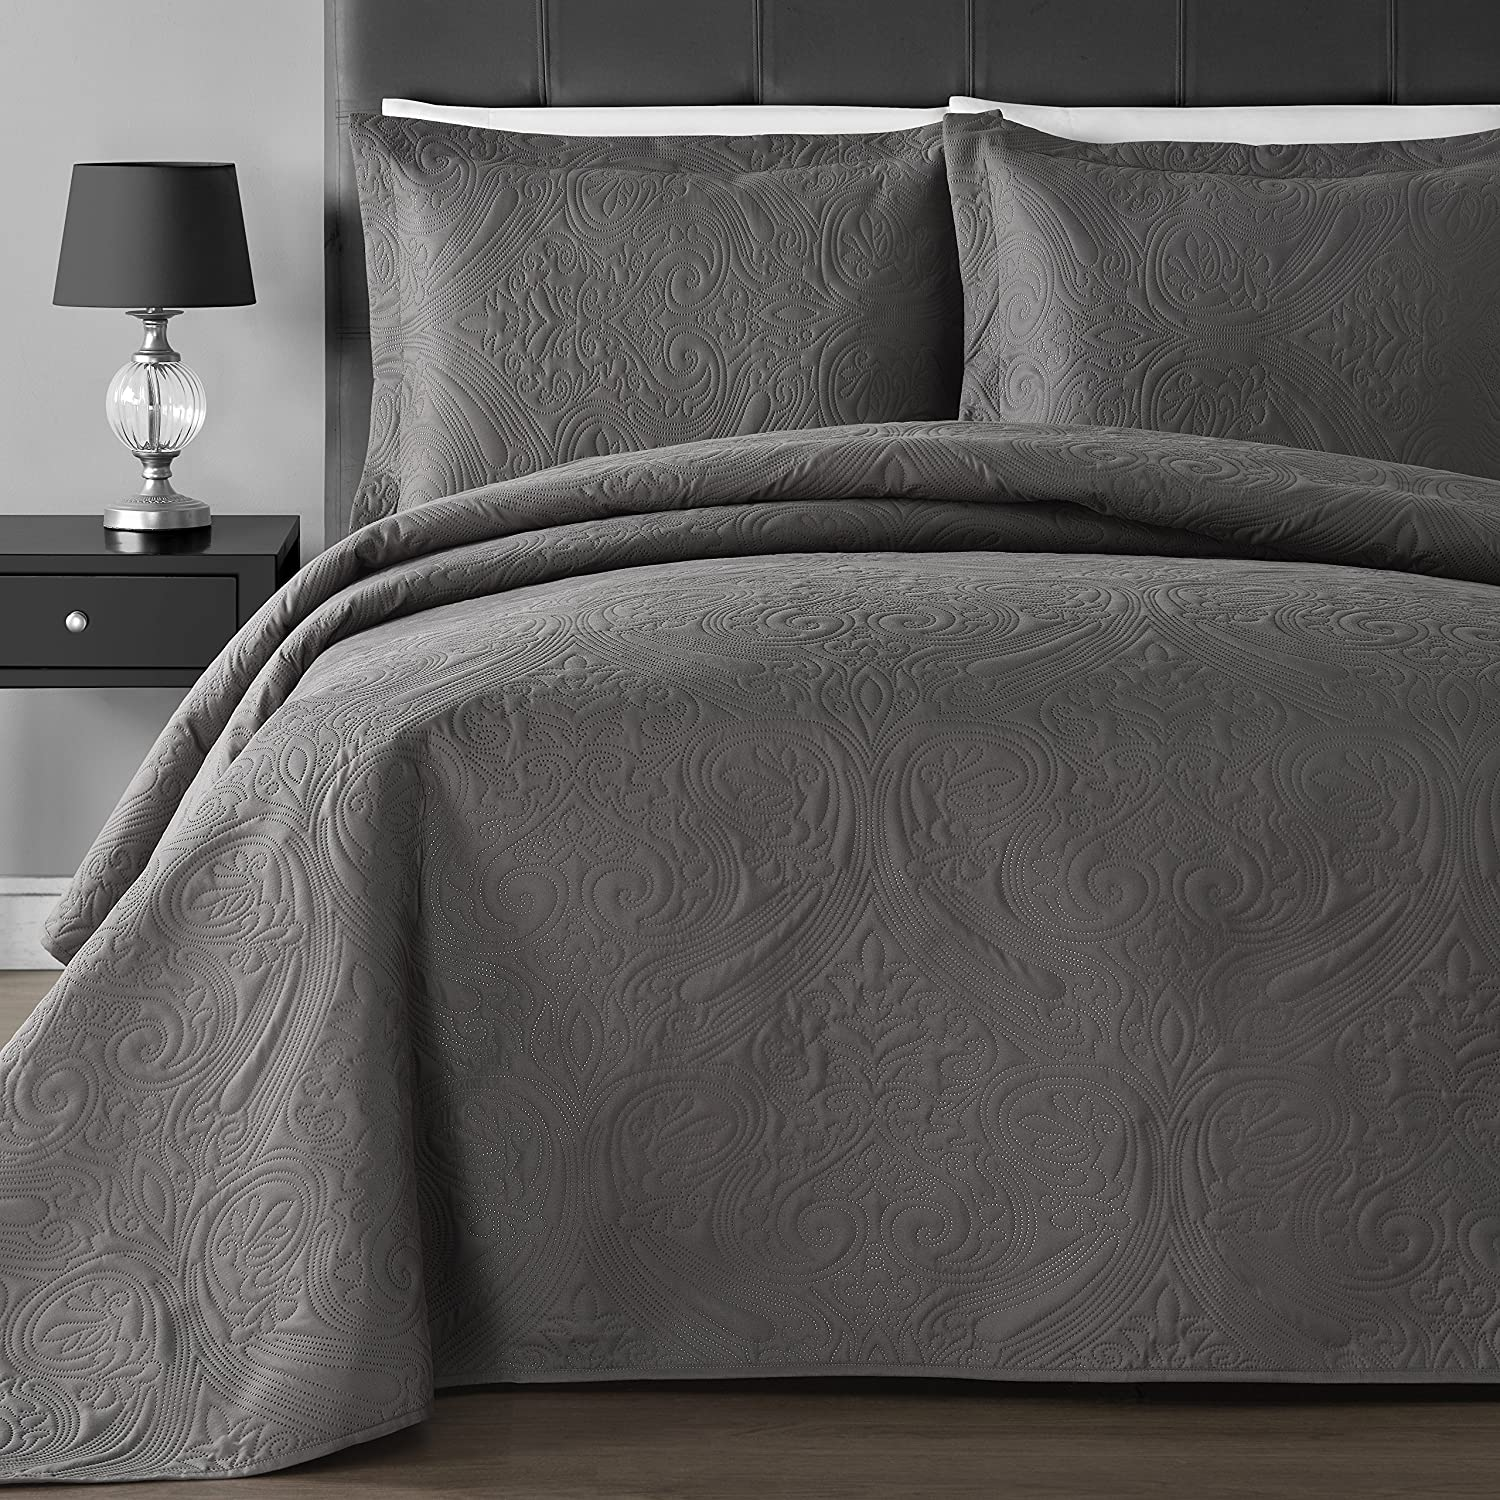 Comfy Bedding Extra Lightweight and Oversized Thermal Pressing Floral 3-piece Coverlet Set (Full/Queen, Gray)